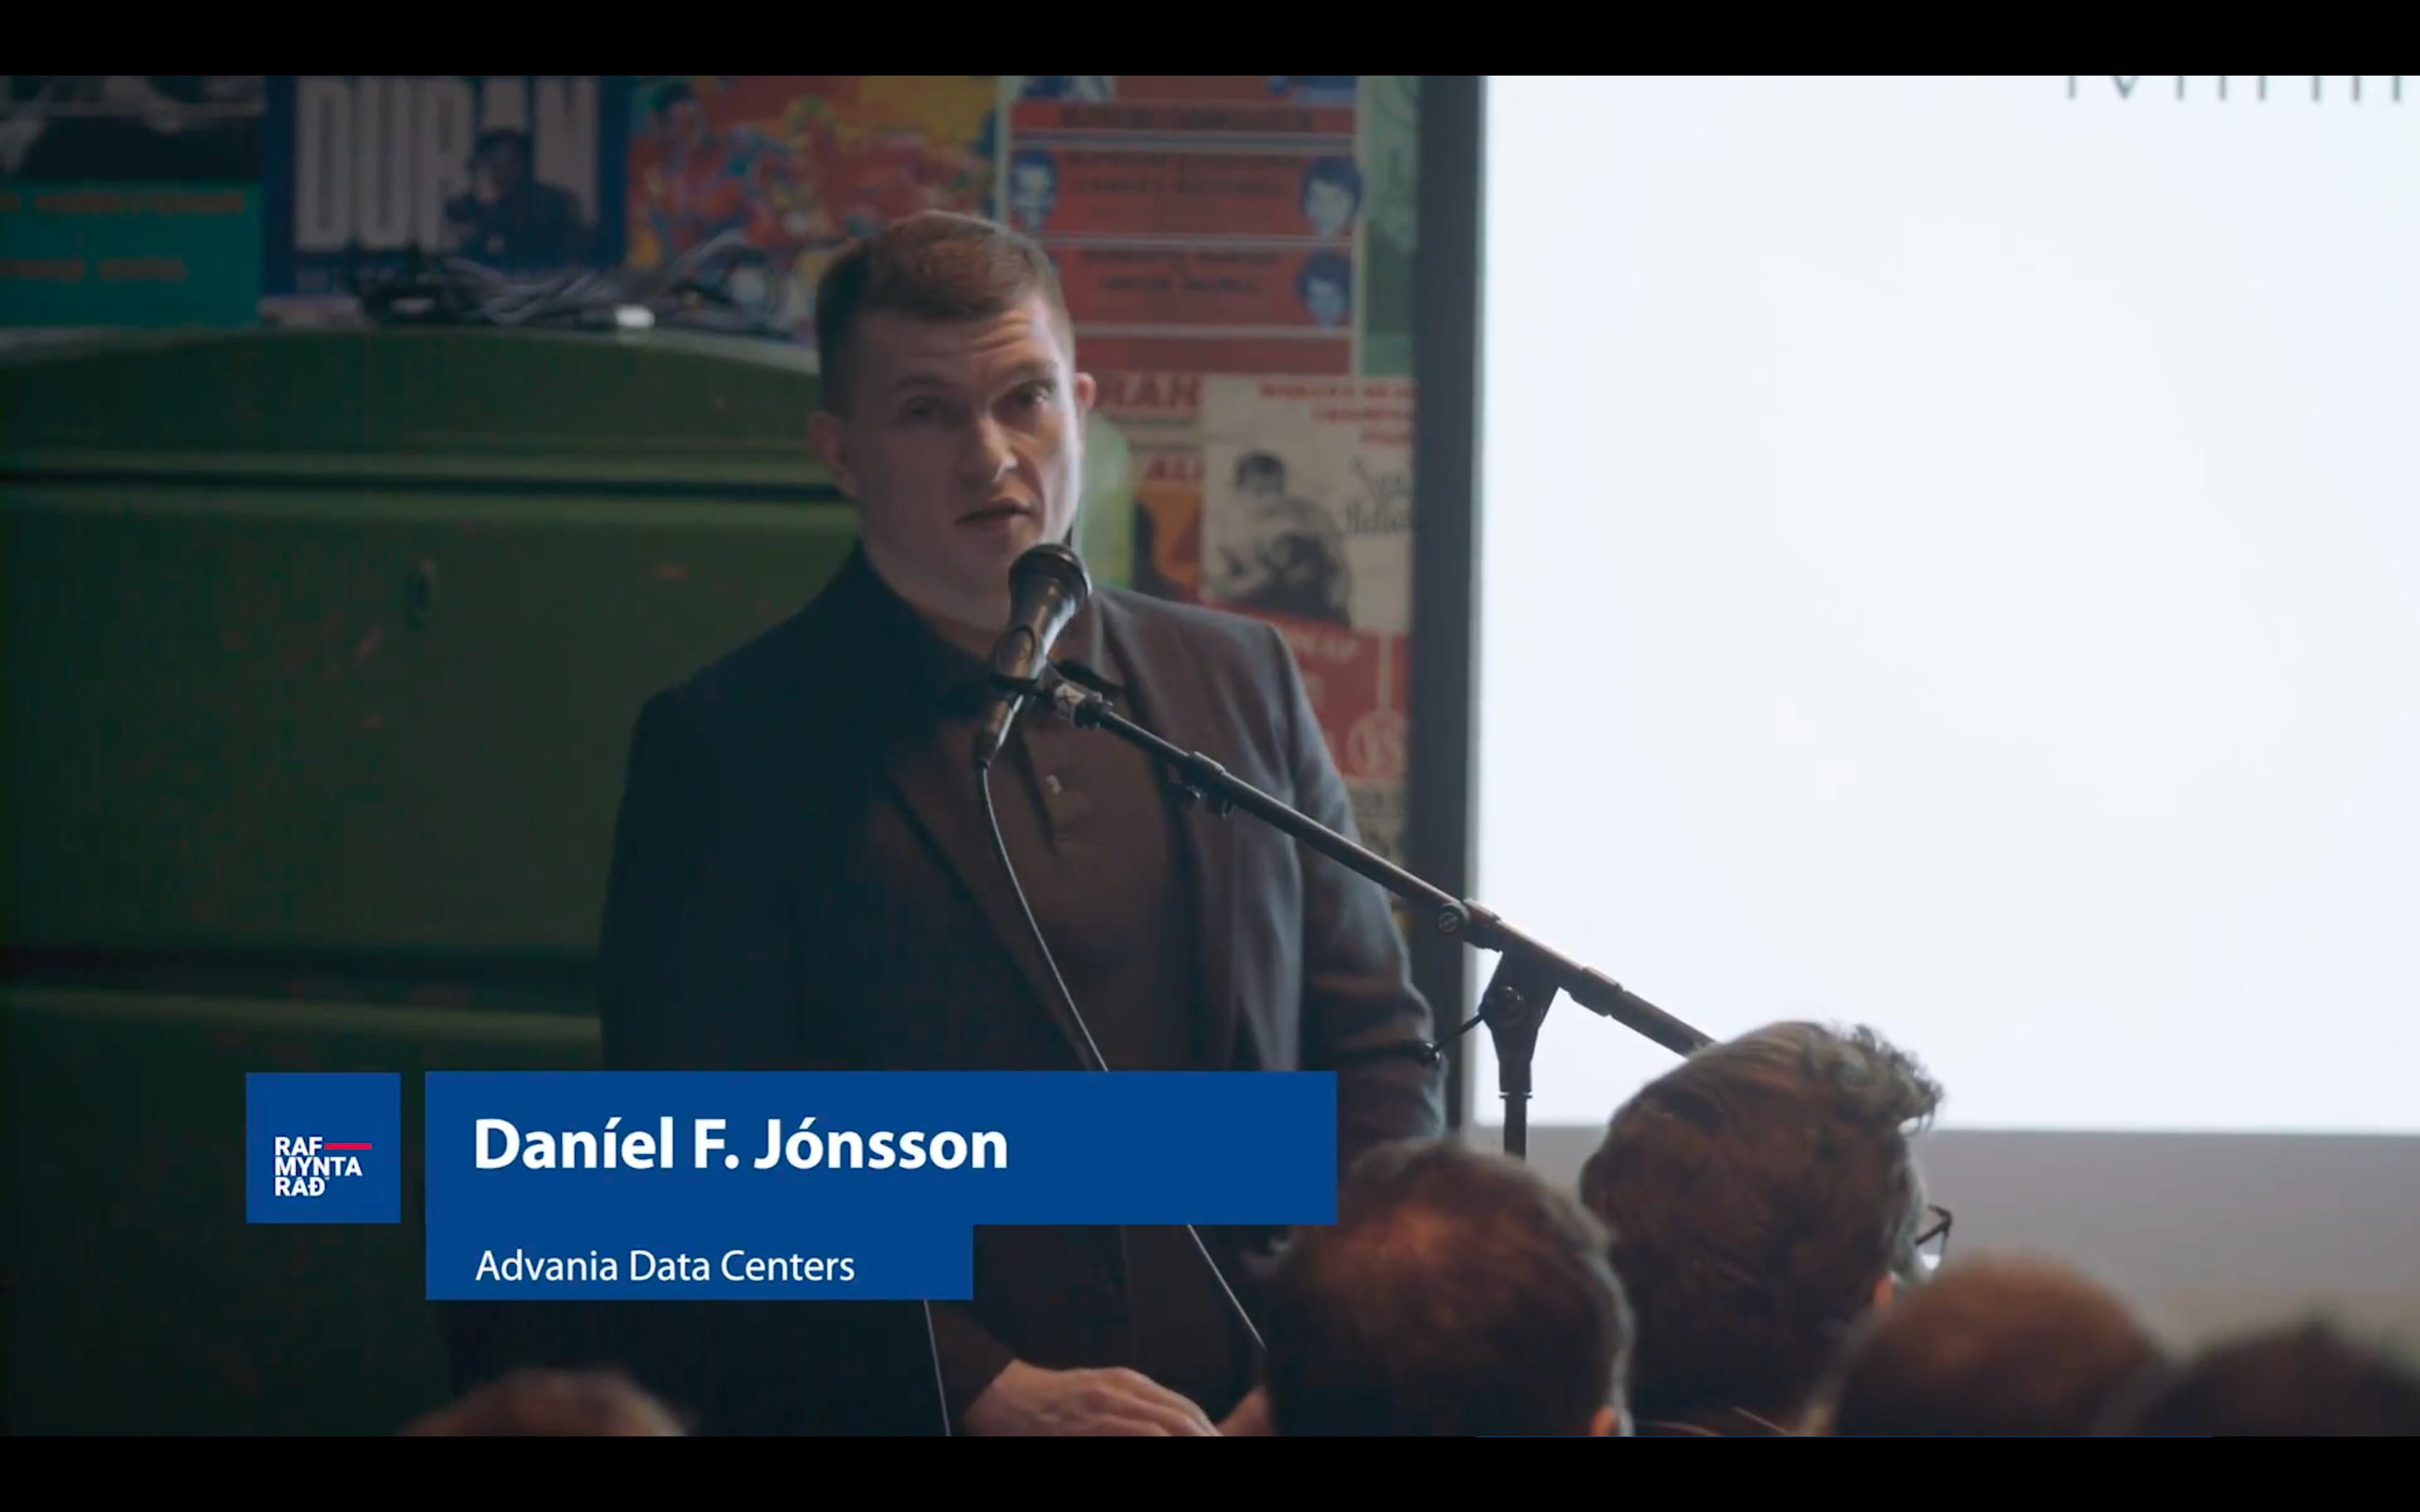 Mining Cryptocurrencies in Iceland - Daníel F. Jónsson